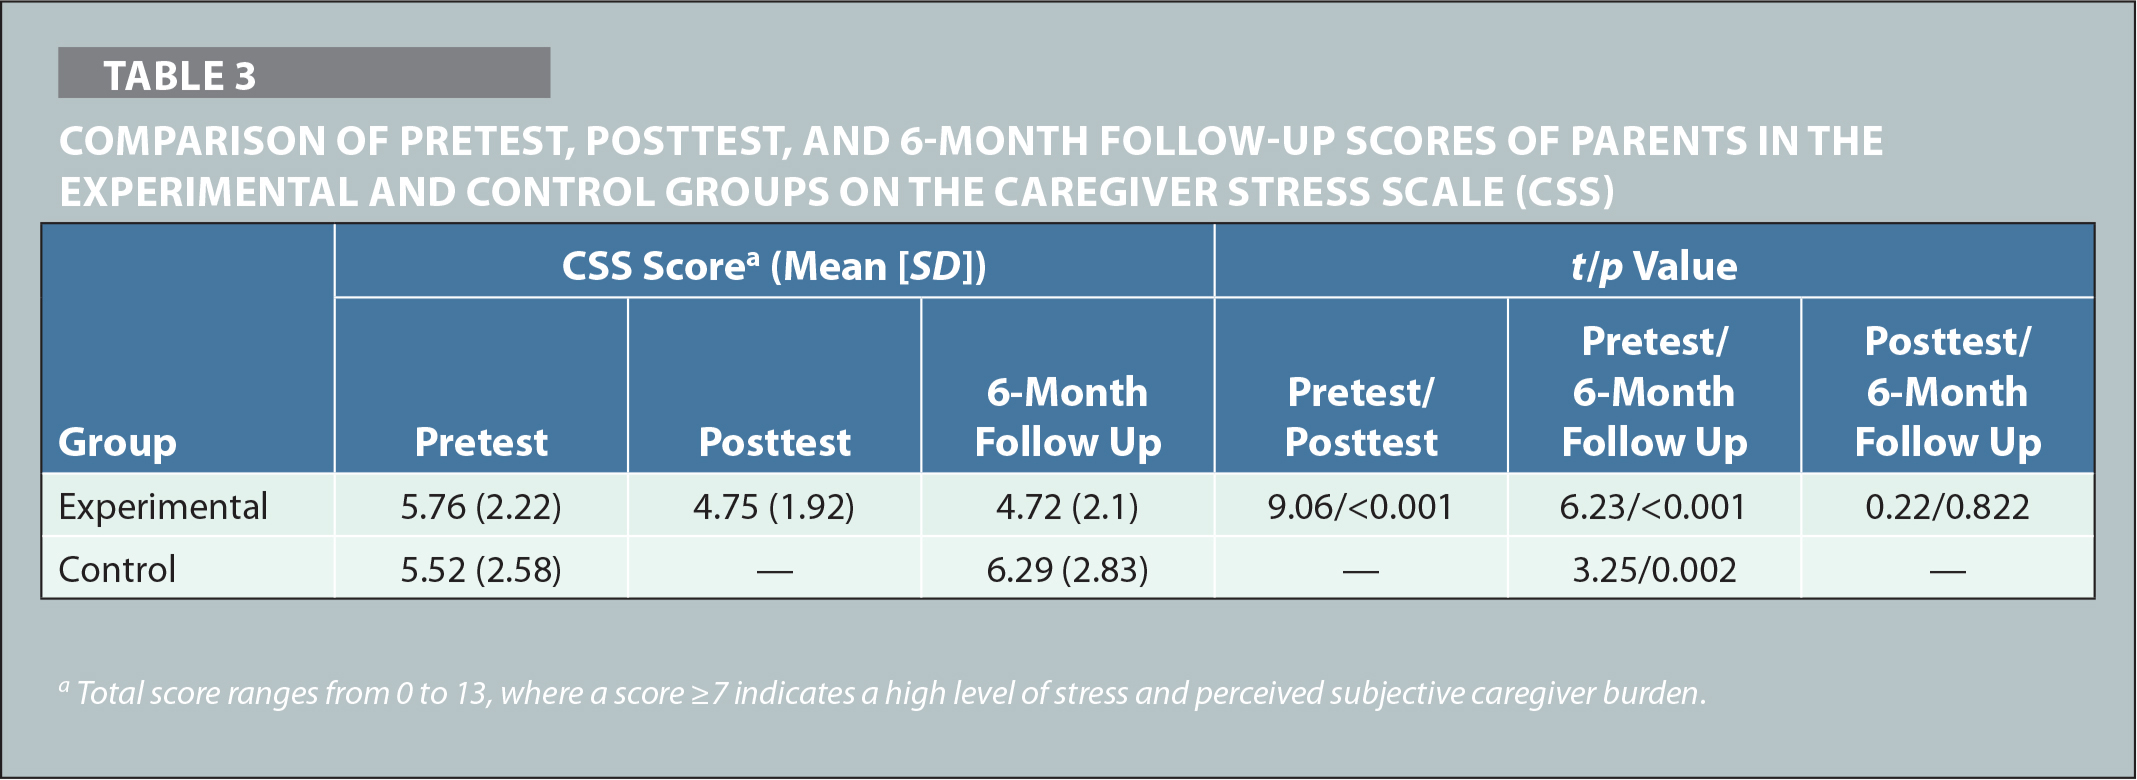 Comparison of Pretest, Posttest, and 6-Month Follow-Up Scores of Parents in the Experimental and Control Groups on the Caregiver Stress Scale (CSS)